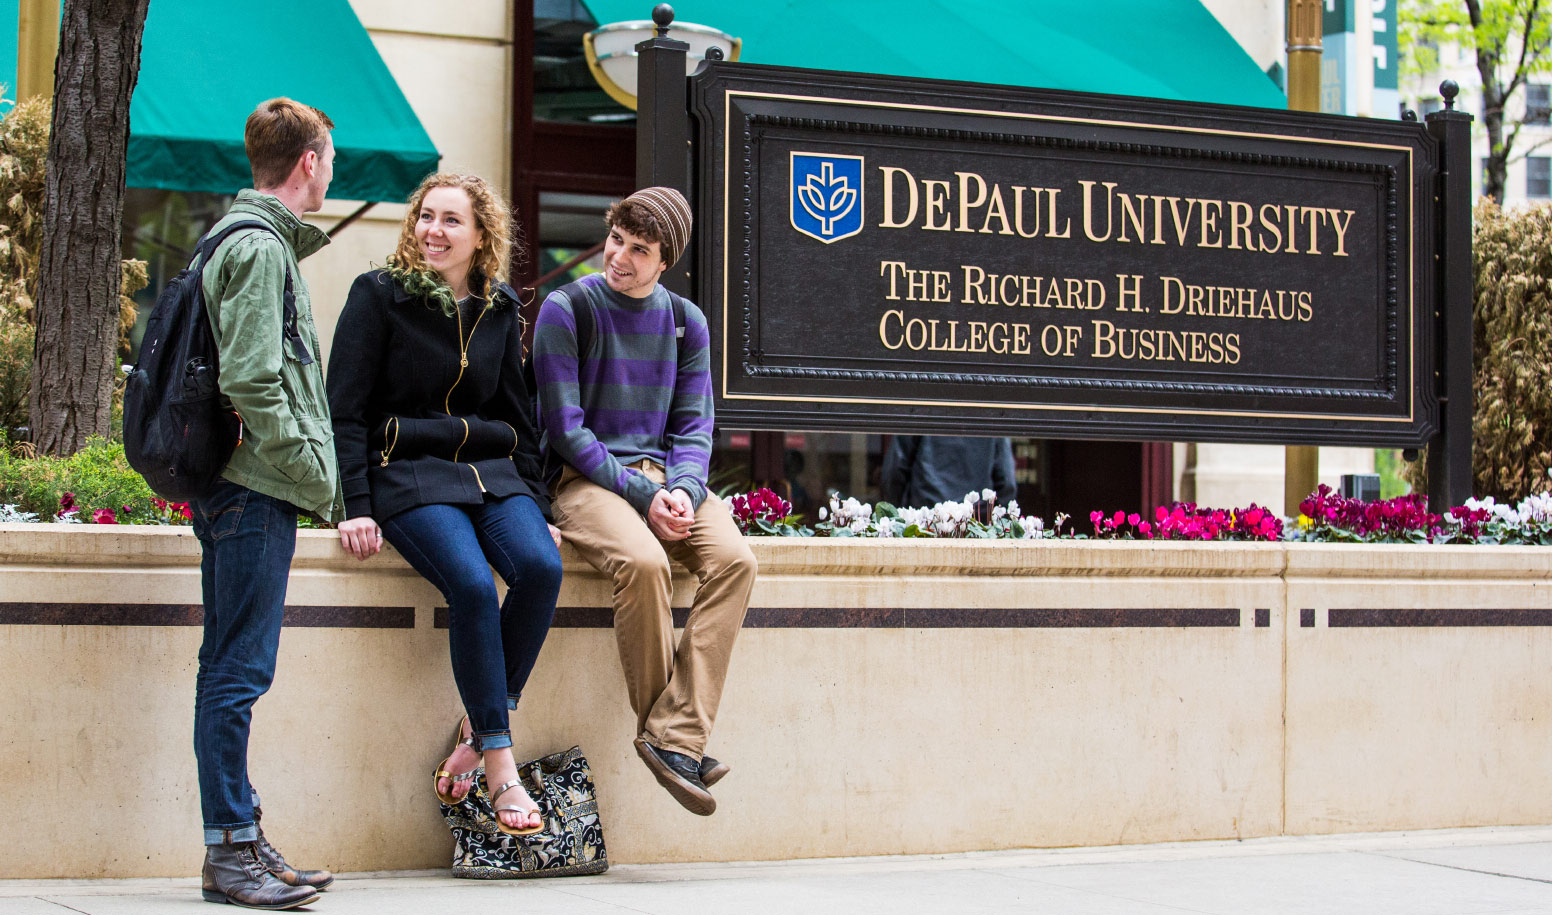 Students sitting near Driehaus College of Business sign